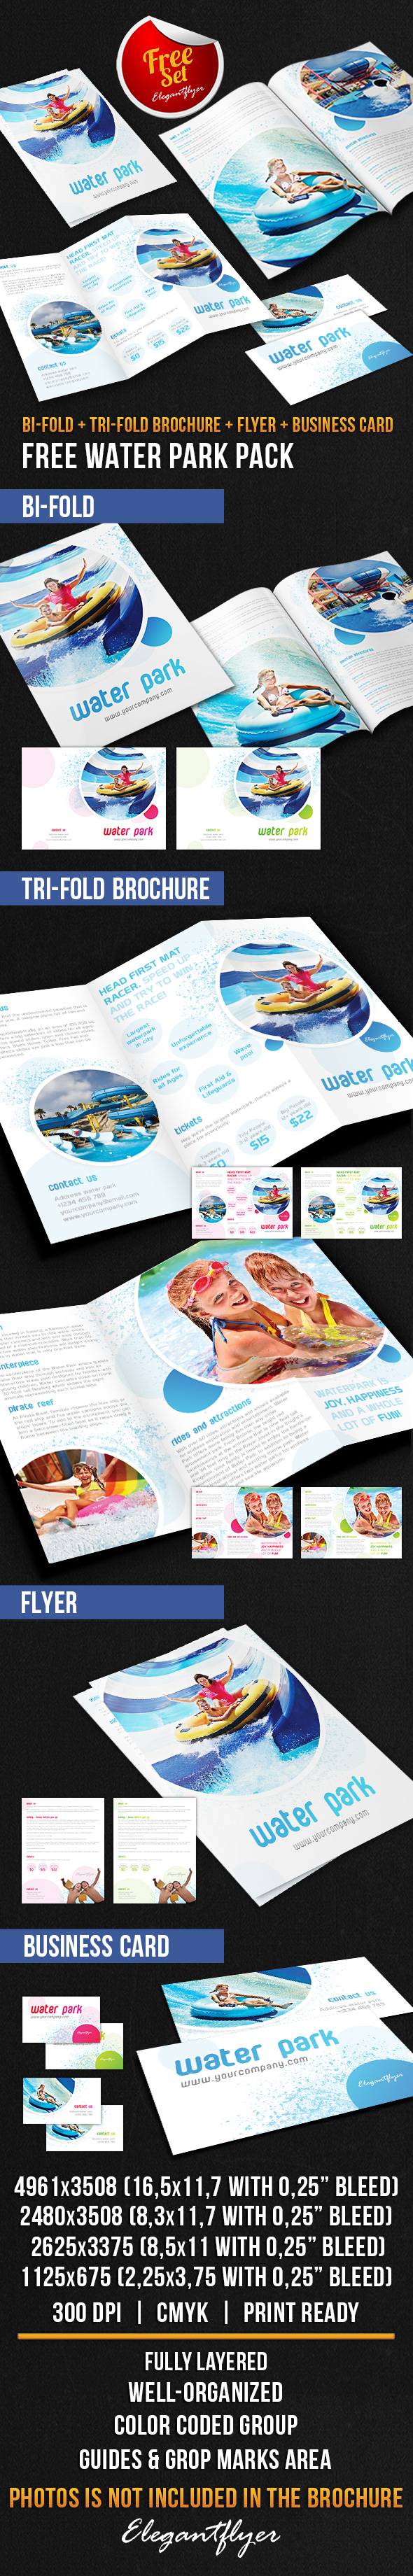 Water Park Brochure Pack Free Psd Template Psd Templates